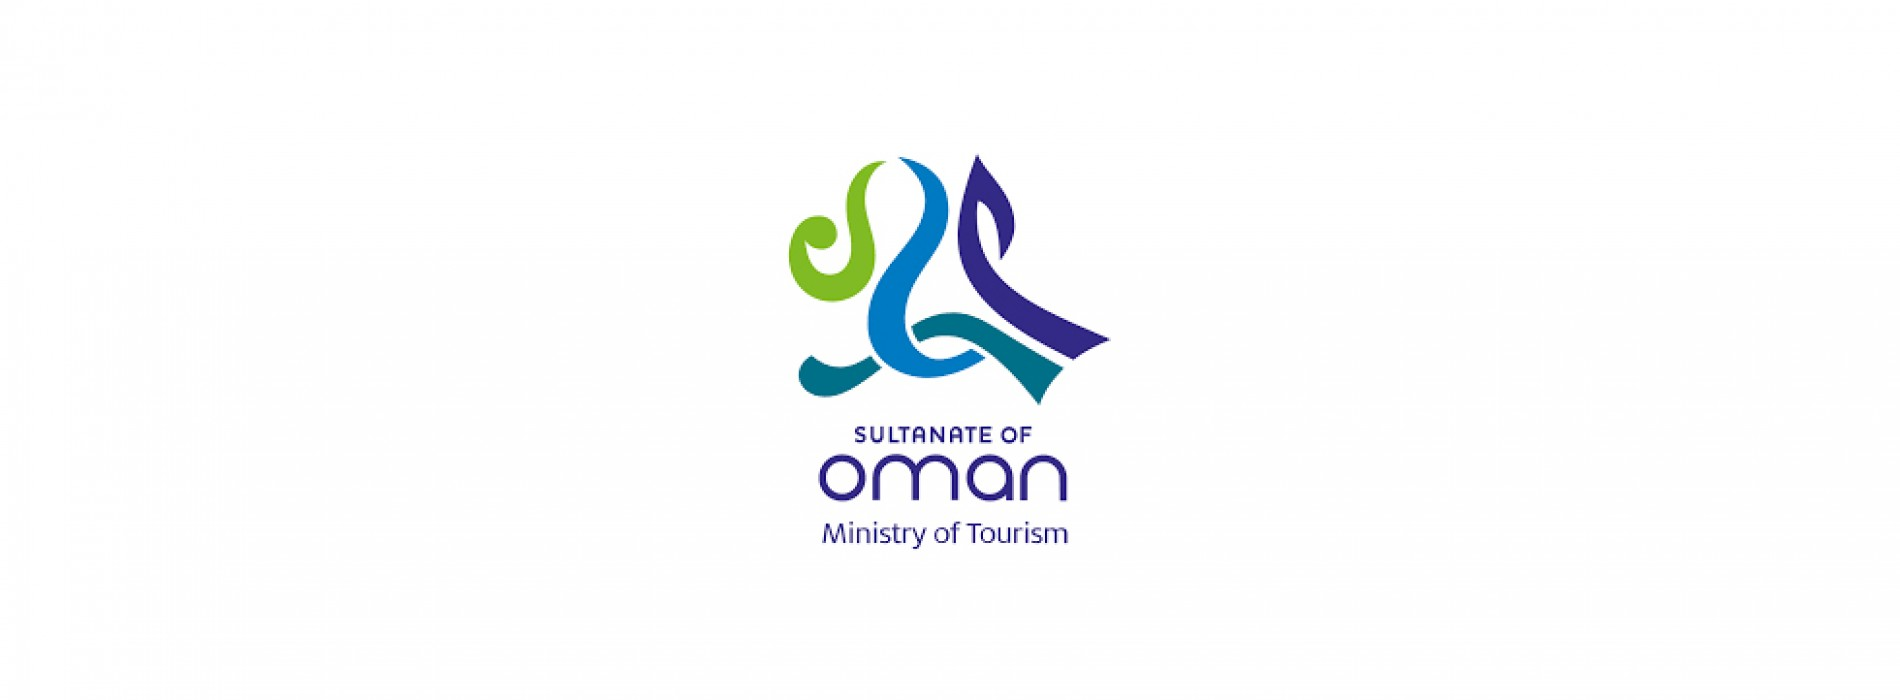 Oman relaxes its visa rules to attract more tourists from India